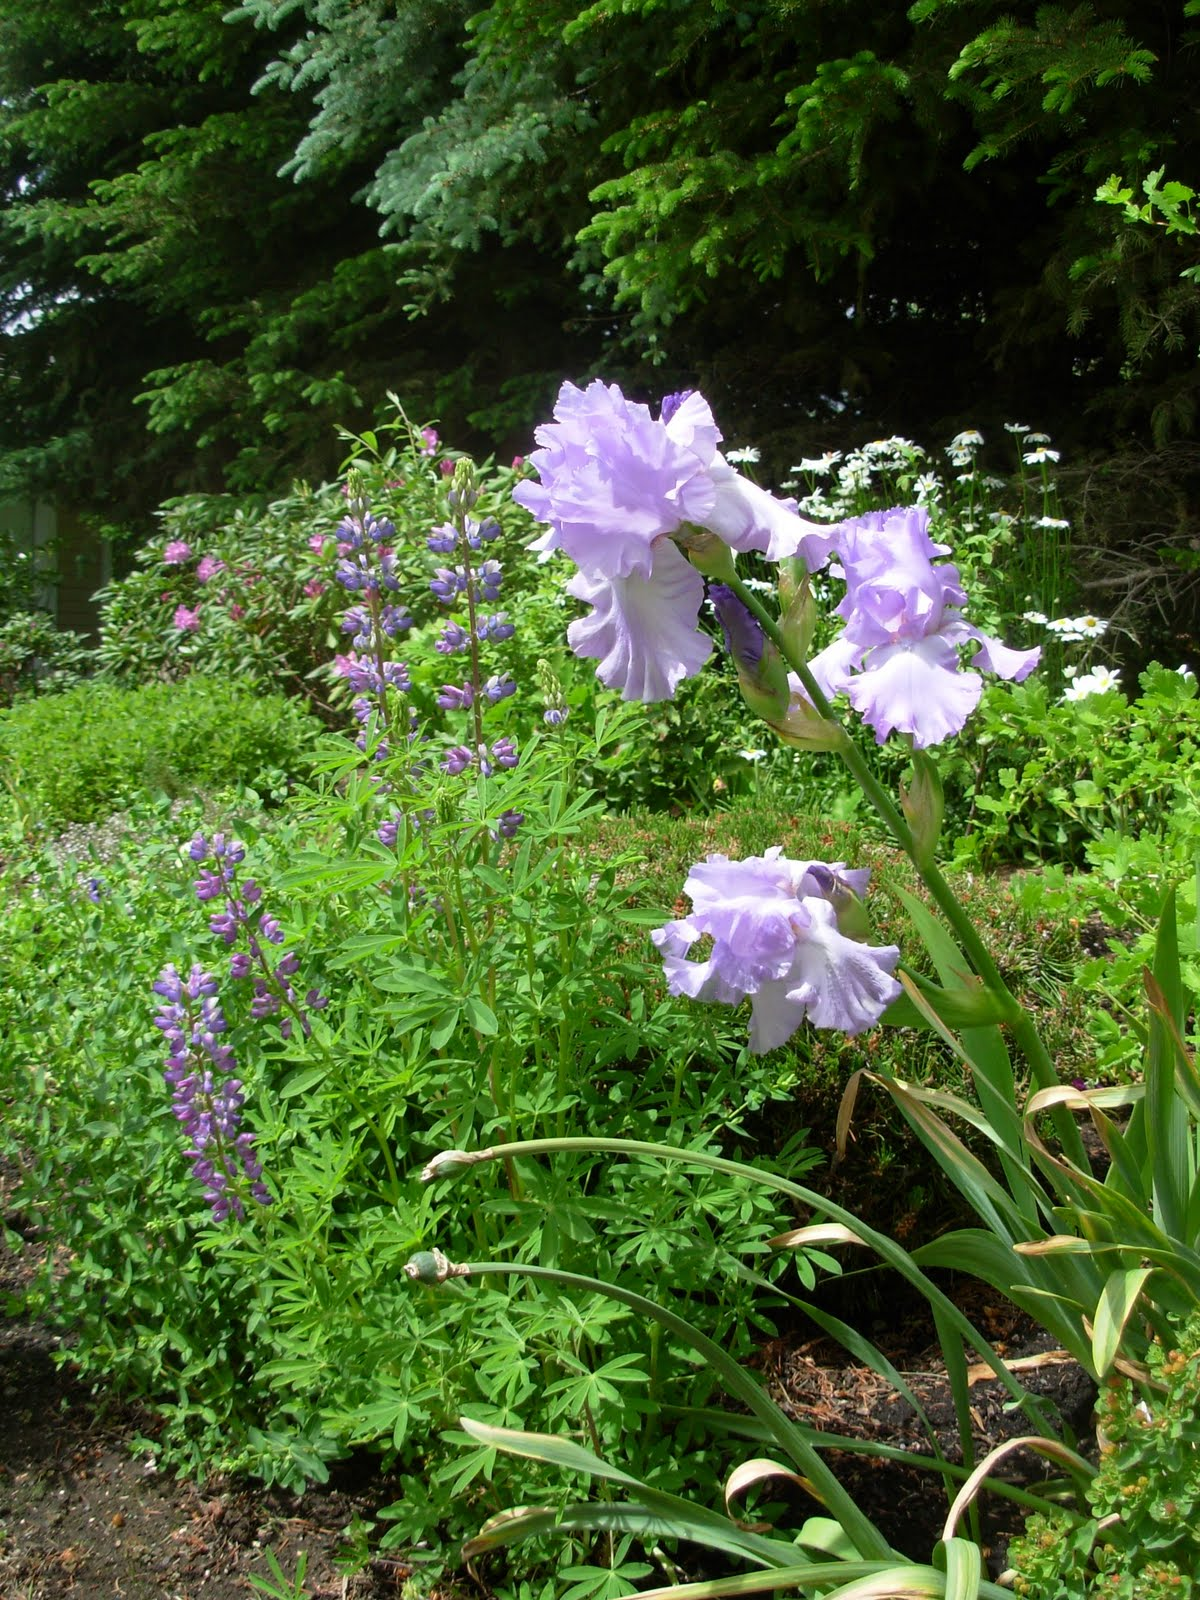 How Do I Take Care Of My Yard? Simple Landscape Maintenance Tips for